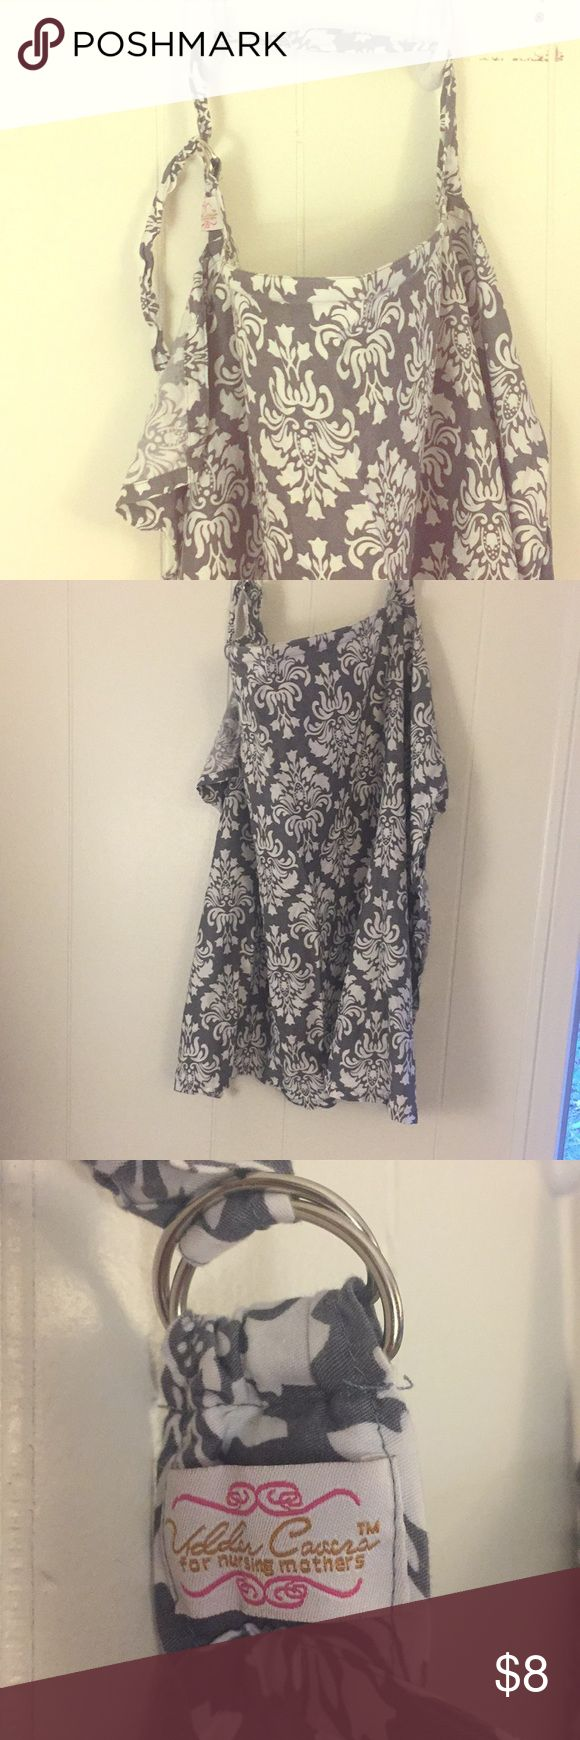 Udder Covers Nursing Cover Udder Covers Nursing Cover Beautiful white & grey print Used a few times, clean, no Stains  Adjustable neck Udder Covers Accessories Scarves & Wraps